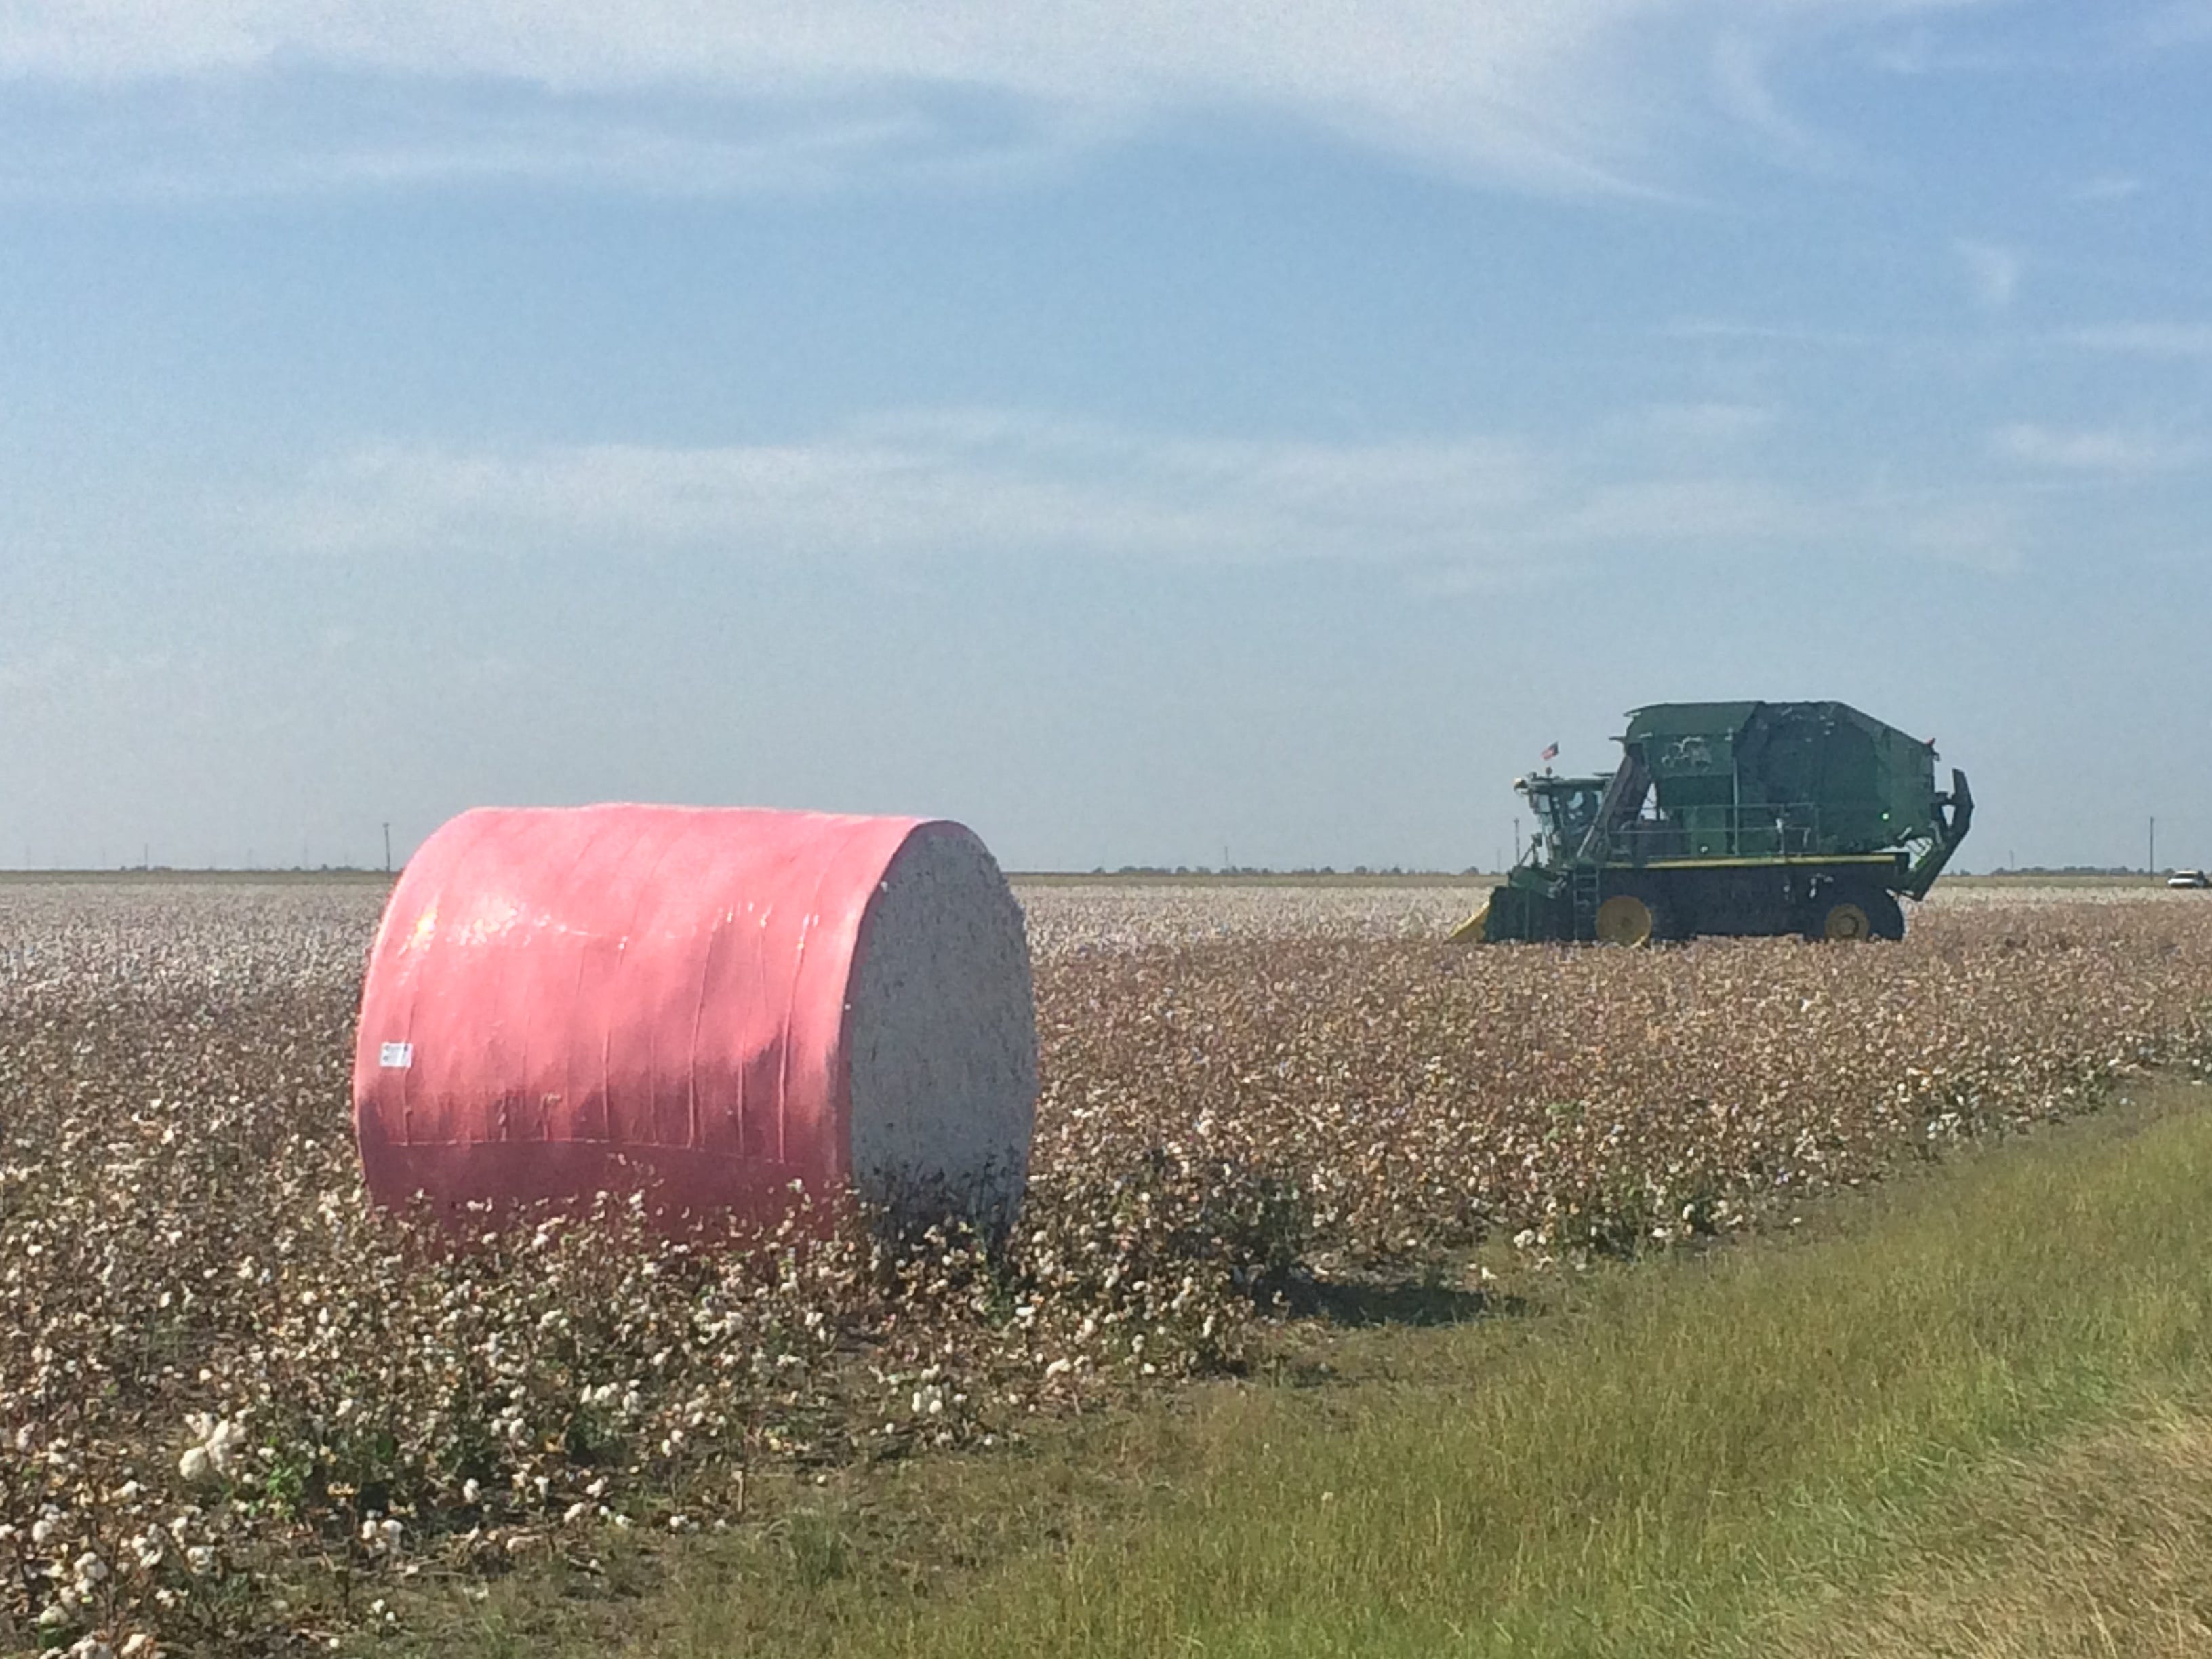 Cotton farmers say early rain and late drought together made harvest difficult this year.